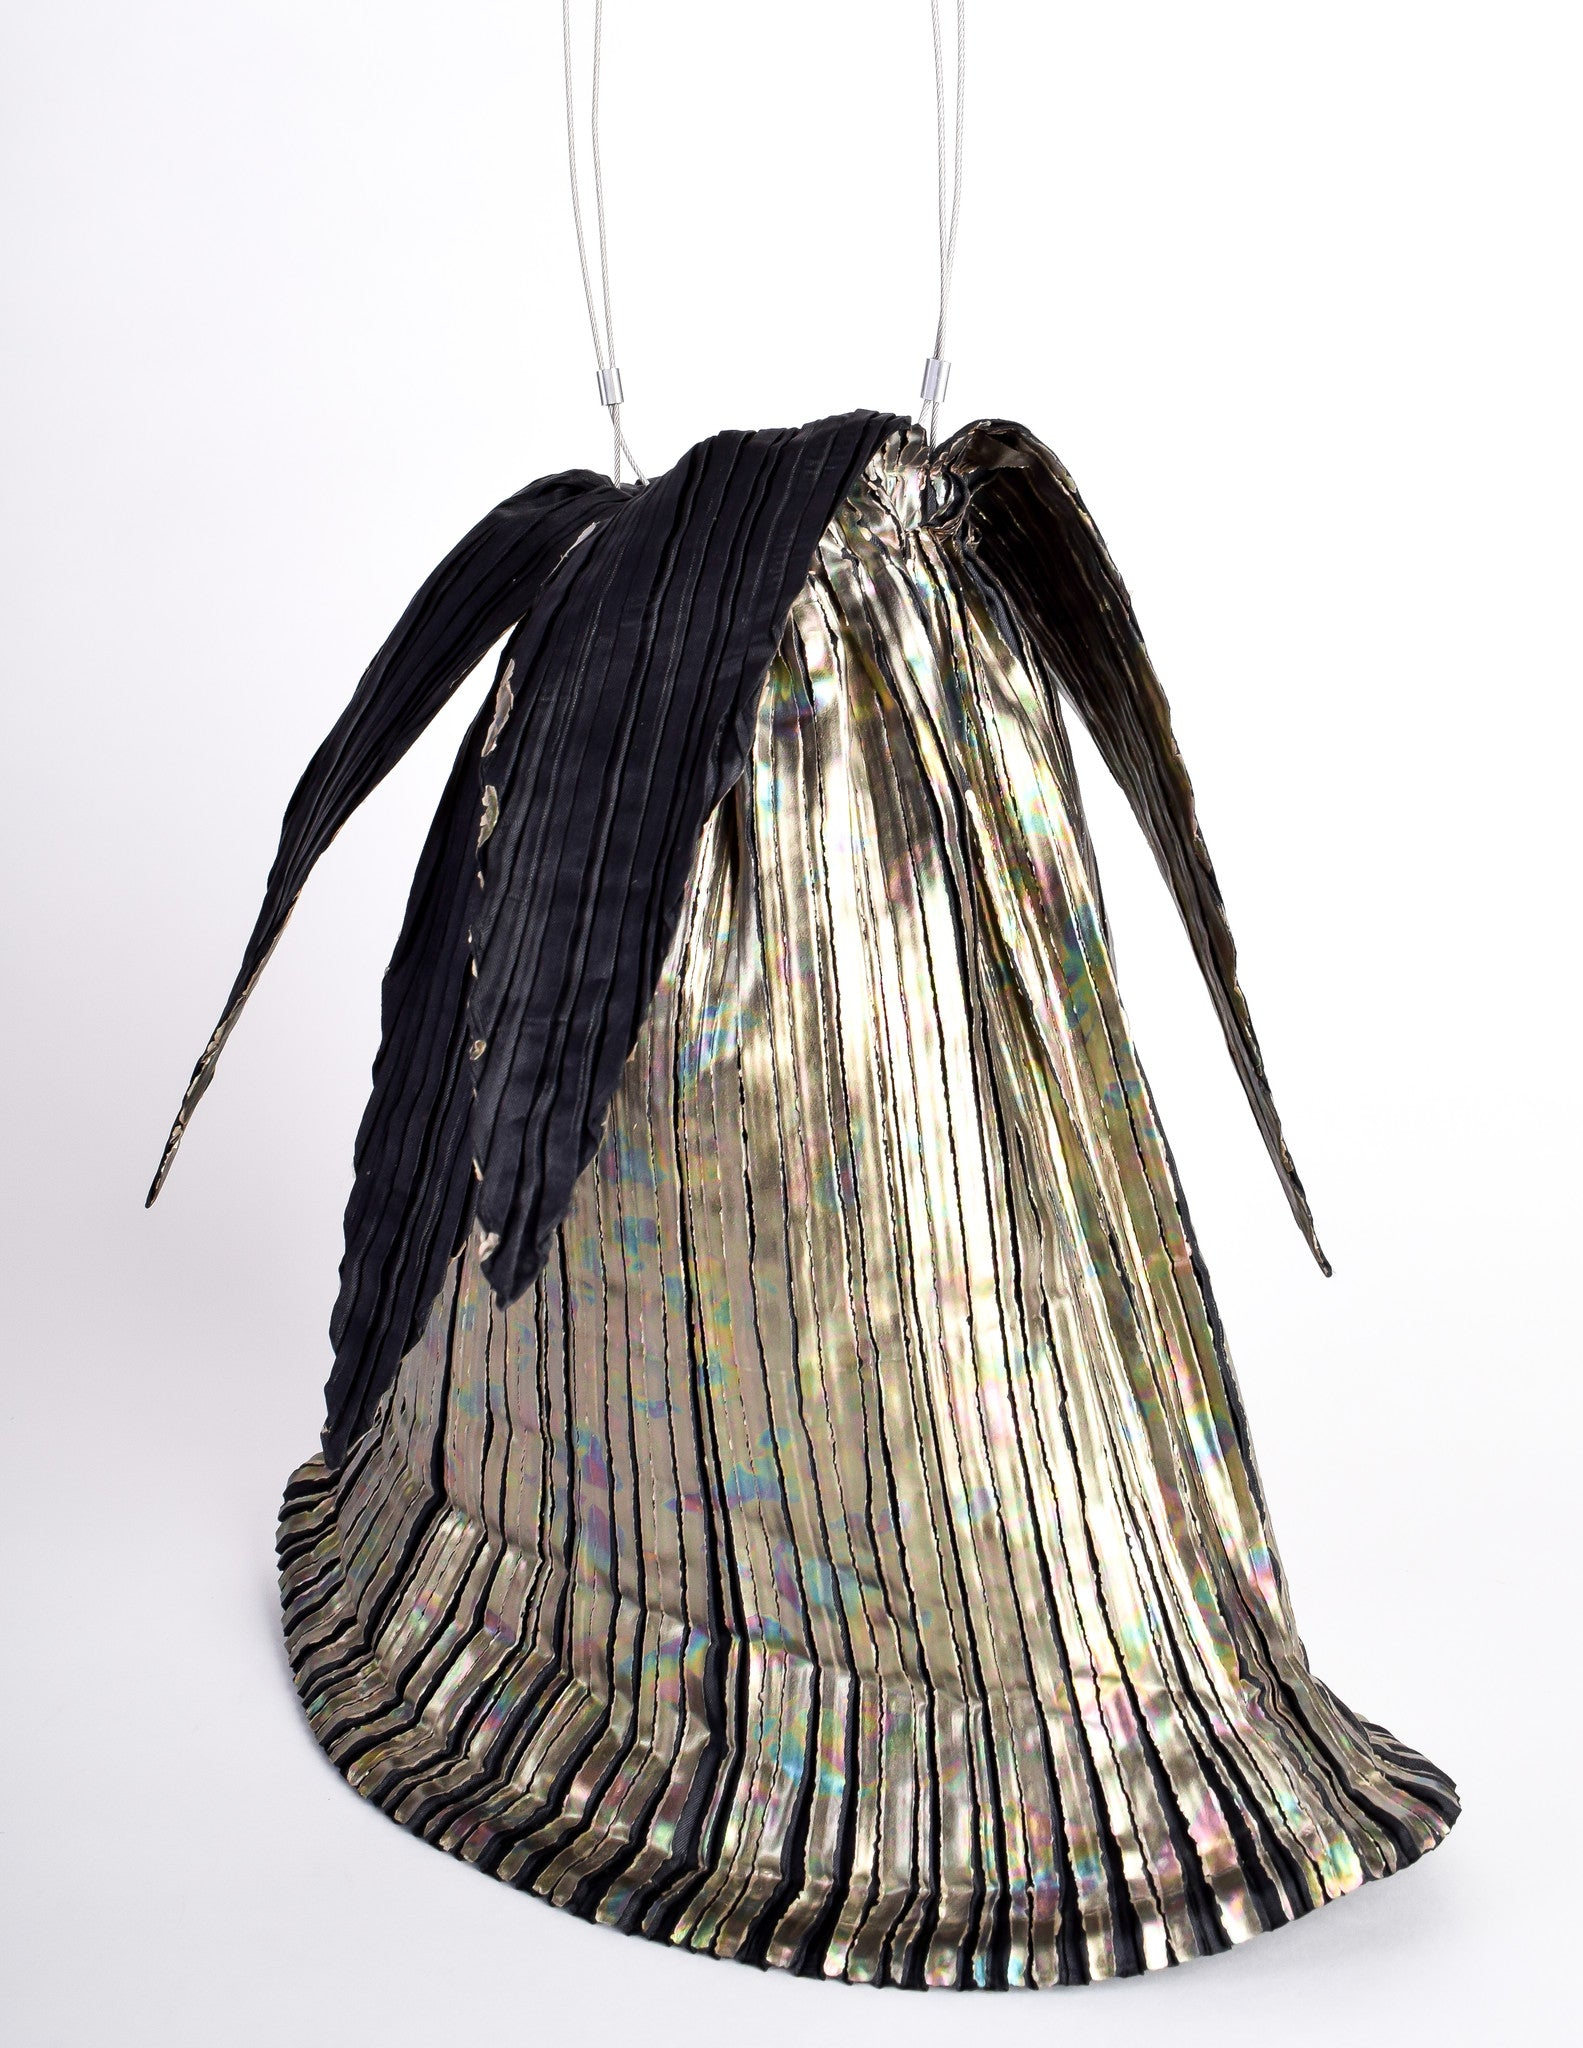 Issey Miyake Vintage Black Amp Gold Iridescent Pleated Bag From Amarcord Vintage Fashion